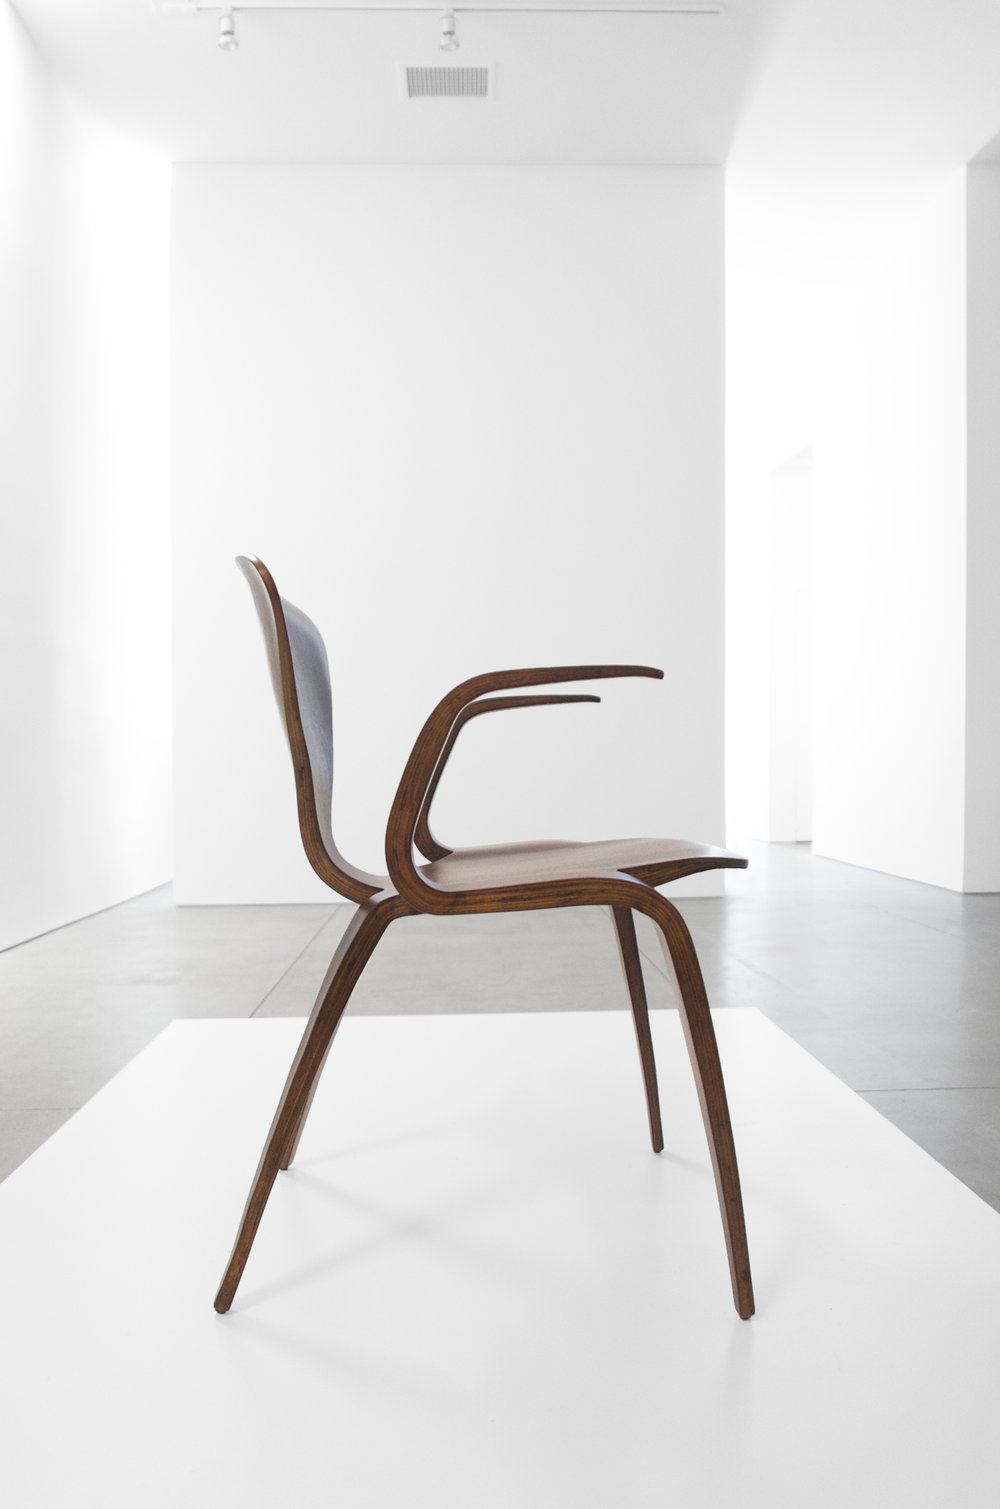 4. Norman Cherner, Rare Prototype Chair, c. 1950, walnut, 30.75H x 23W x 23D inches.jpg